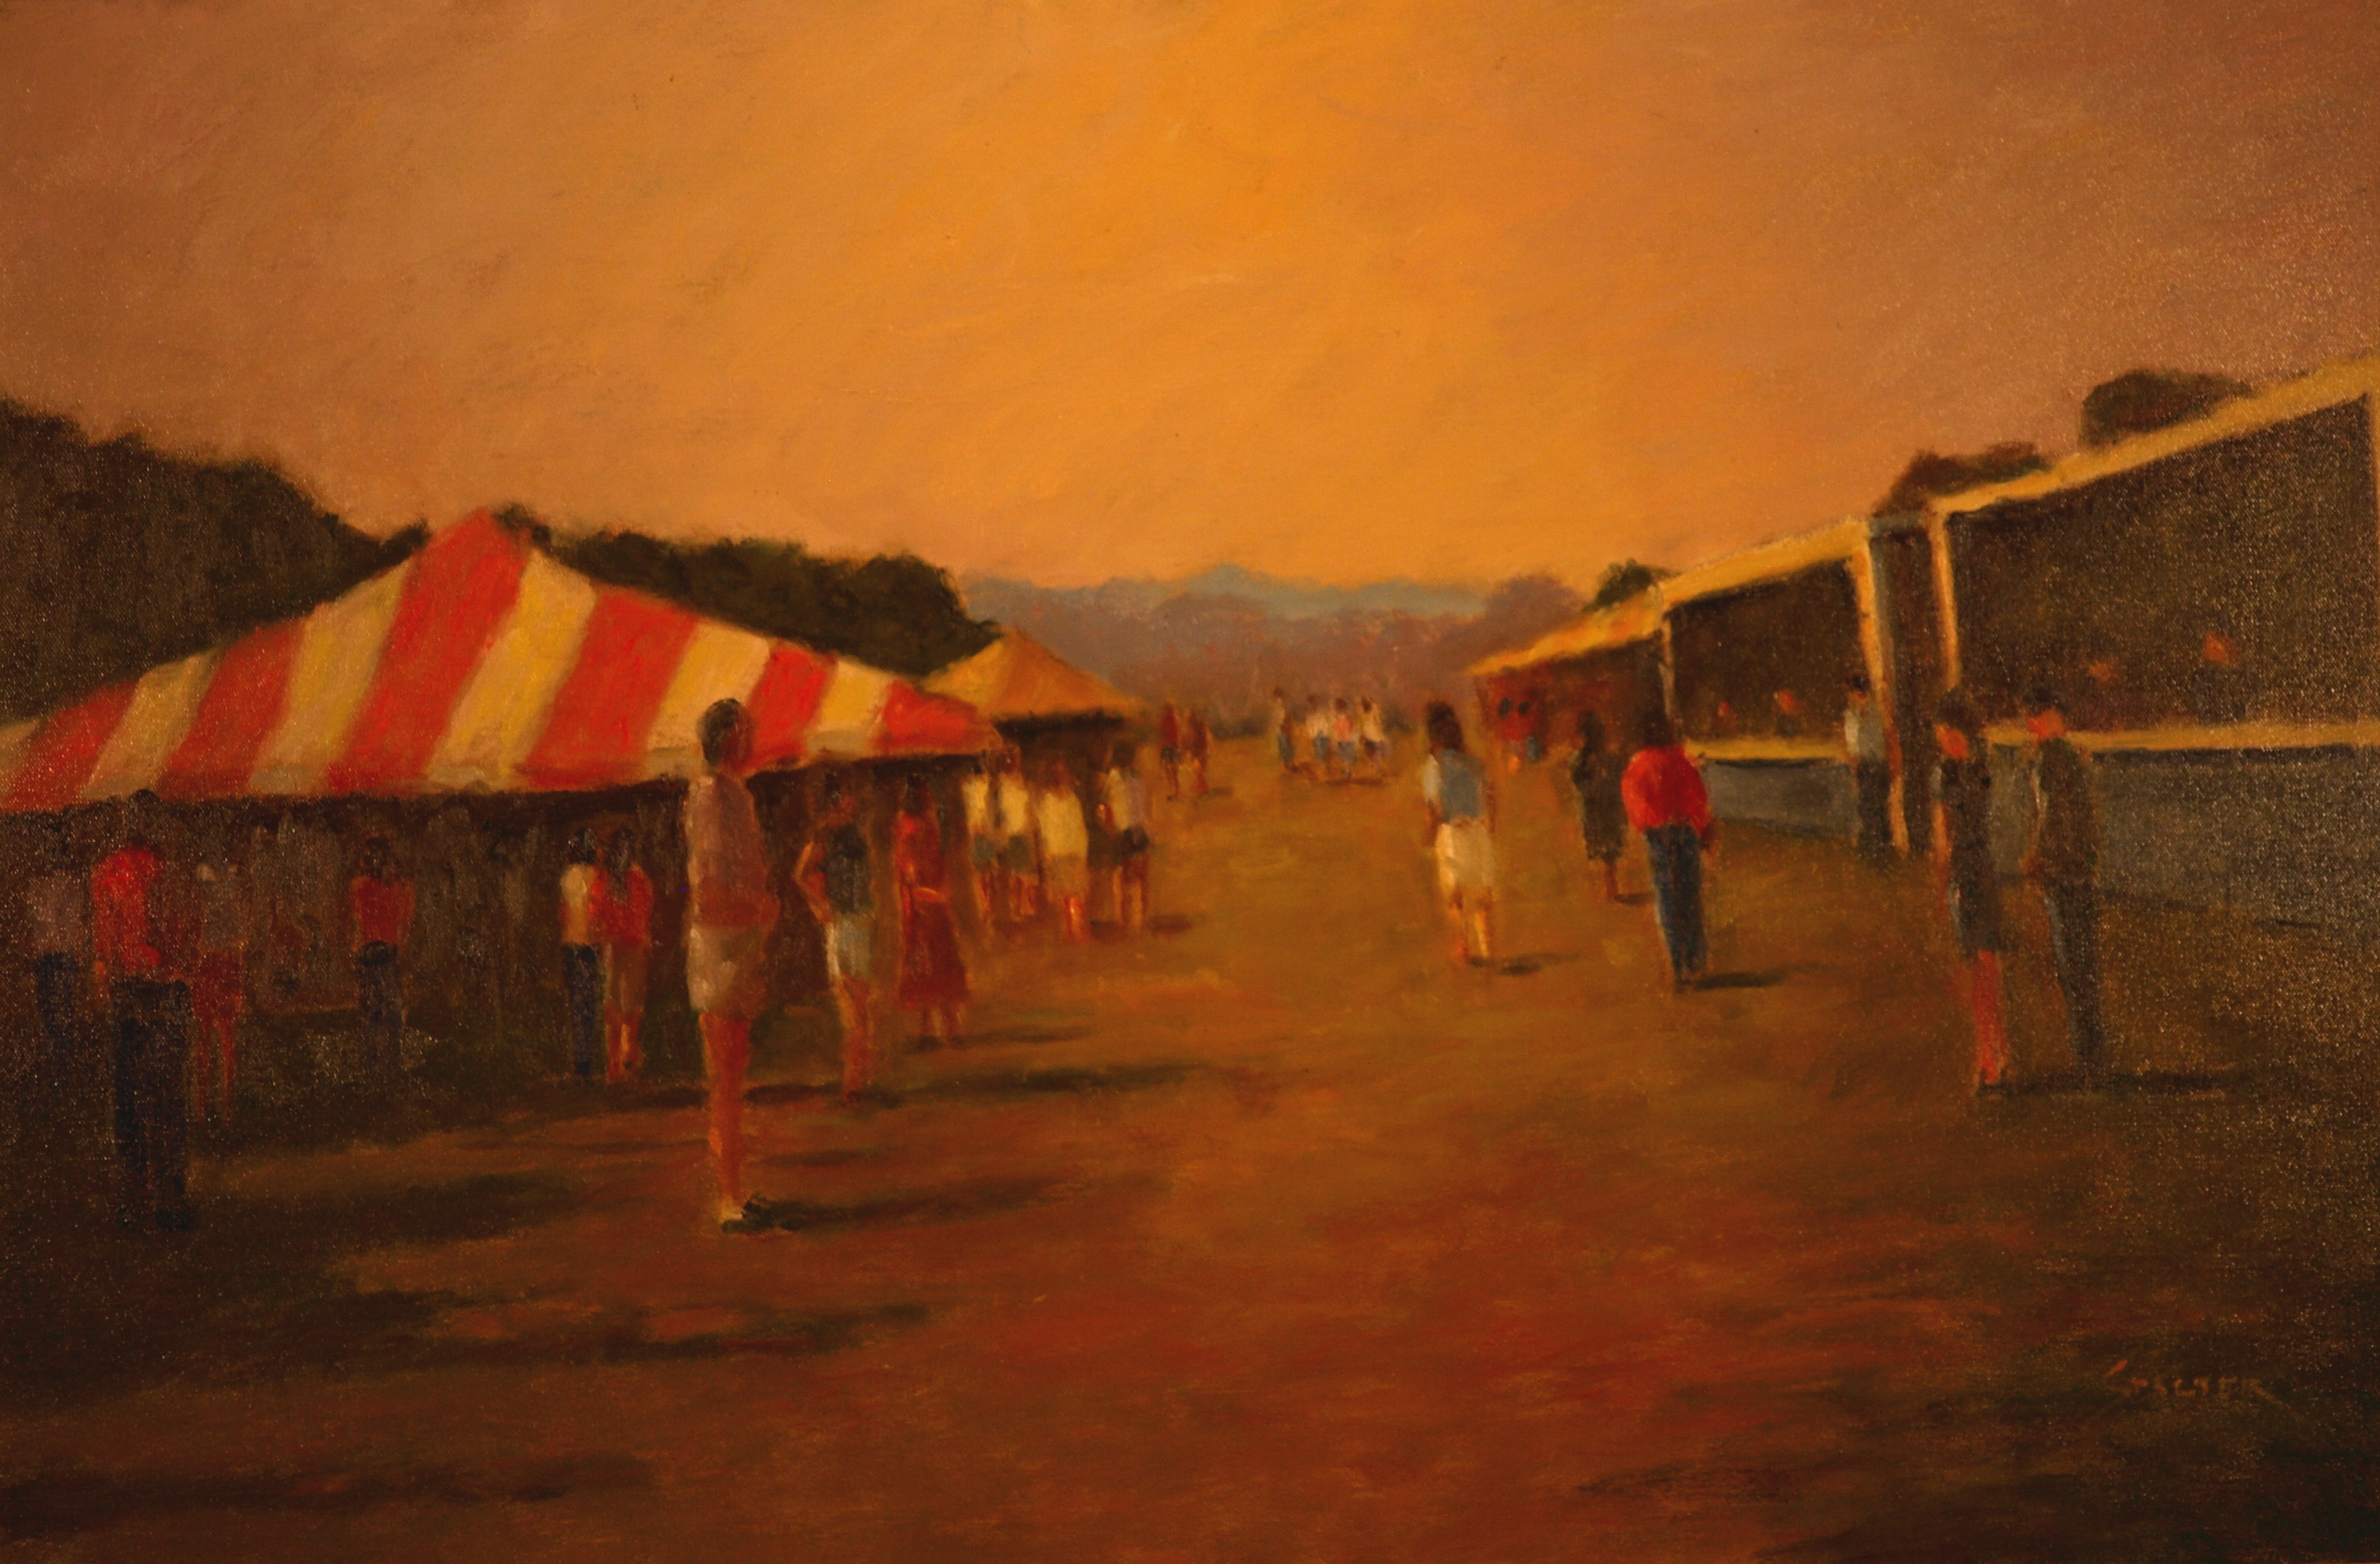 Crowds at the Fair, Oil on Canvas, 24 x 36 Inches, by Richard Stalter, $1200